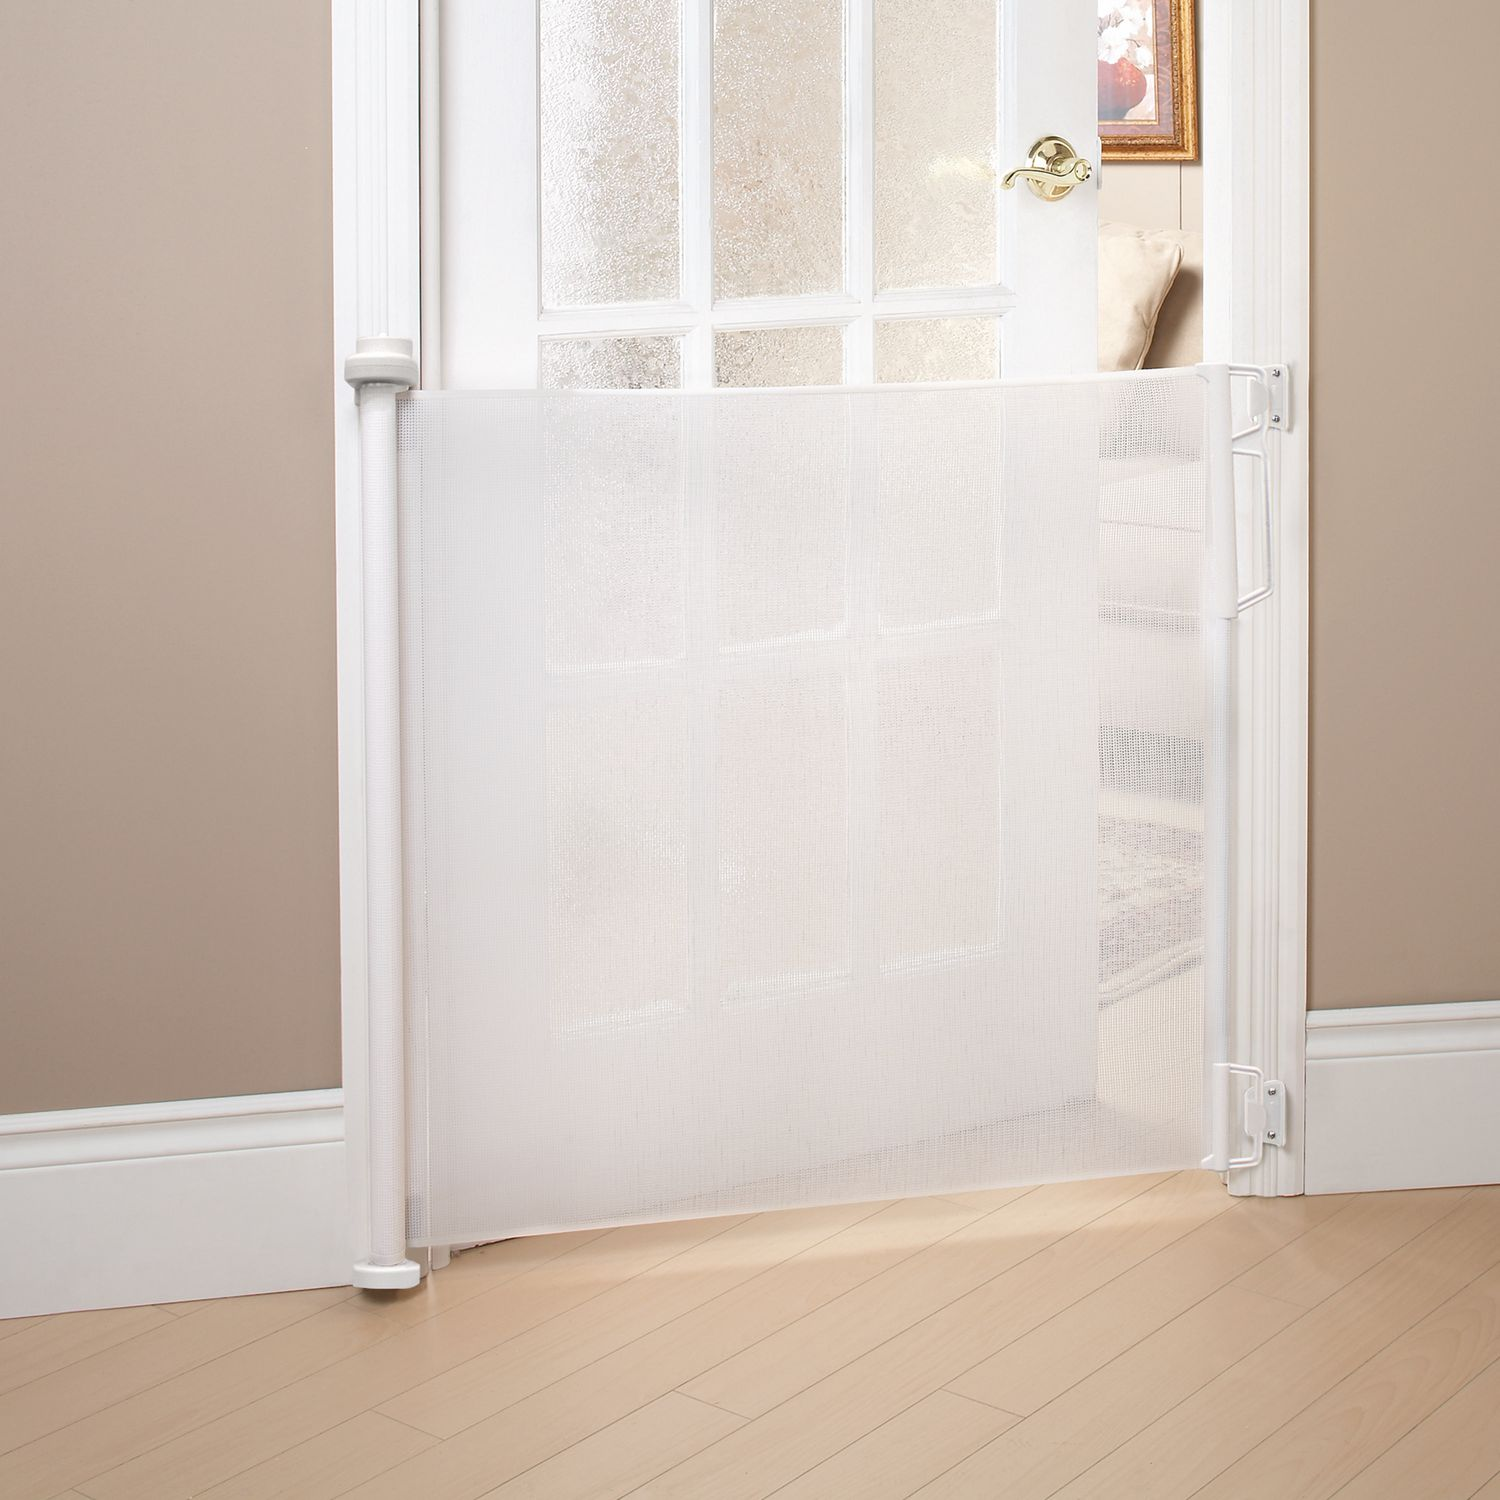 Bily Retractable Safety Gate White Walmart Canada